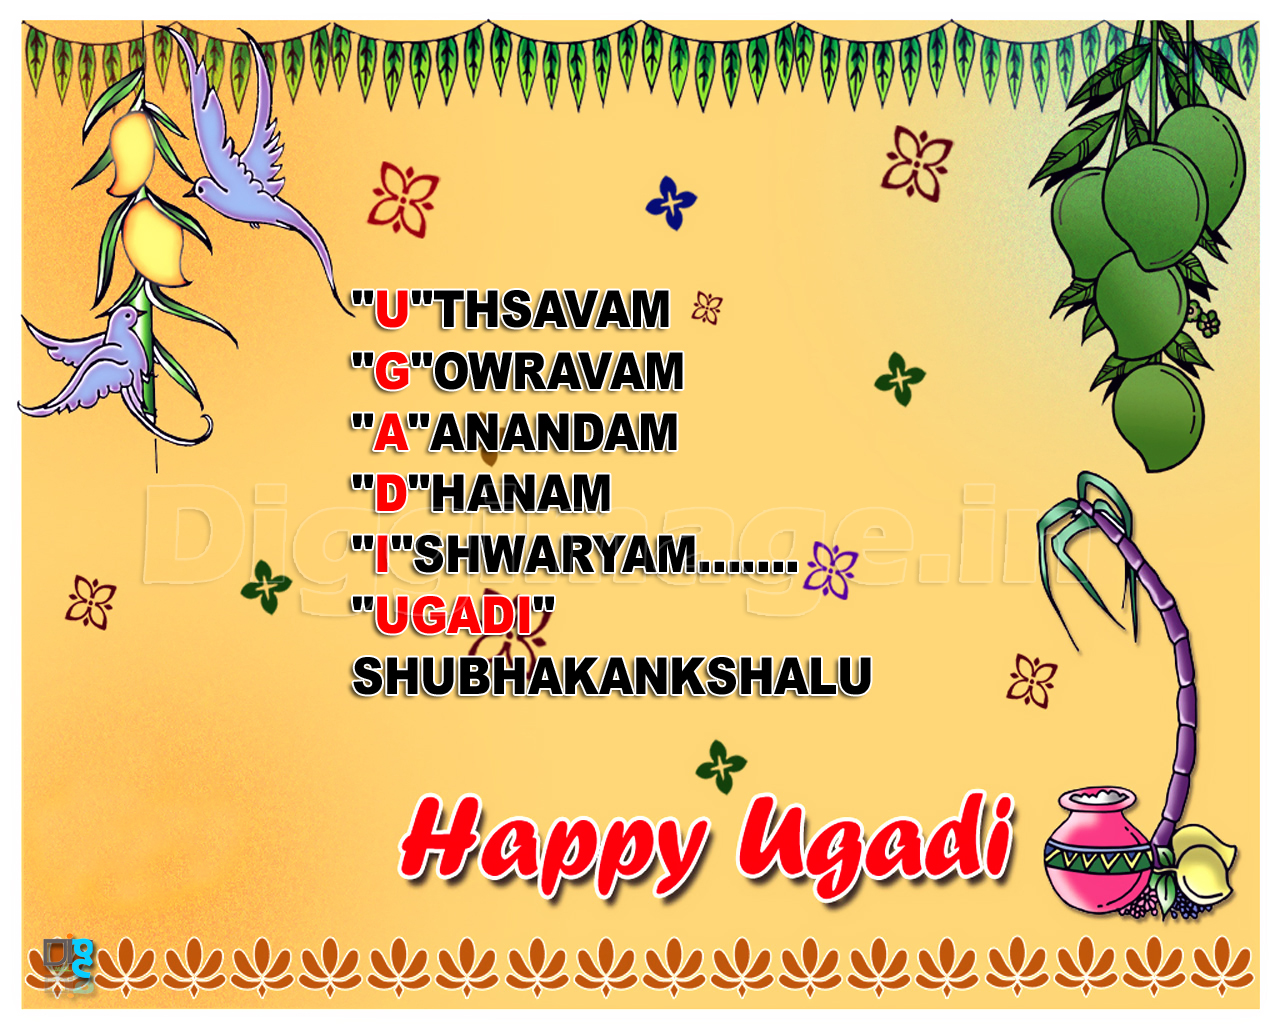 Ugadi%20Shubhakankshalu%20greetings%20,scraps,wallpapers,images,orkut ...